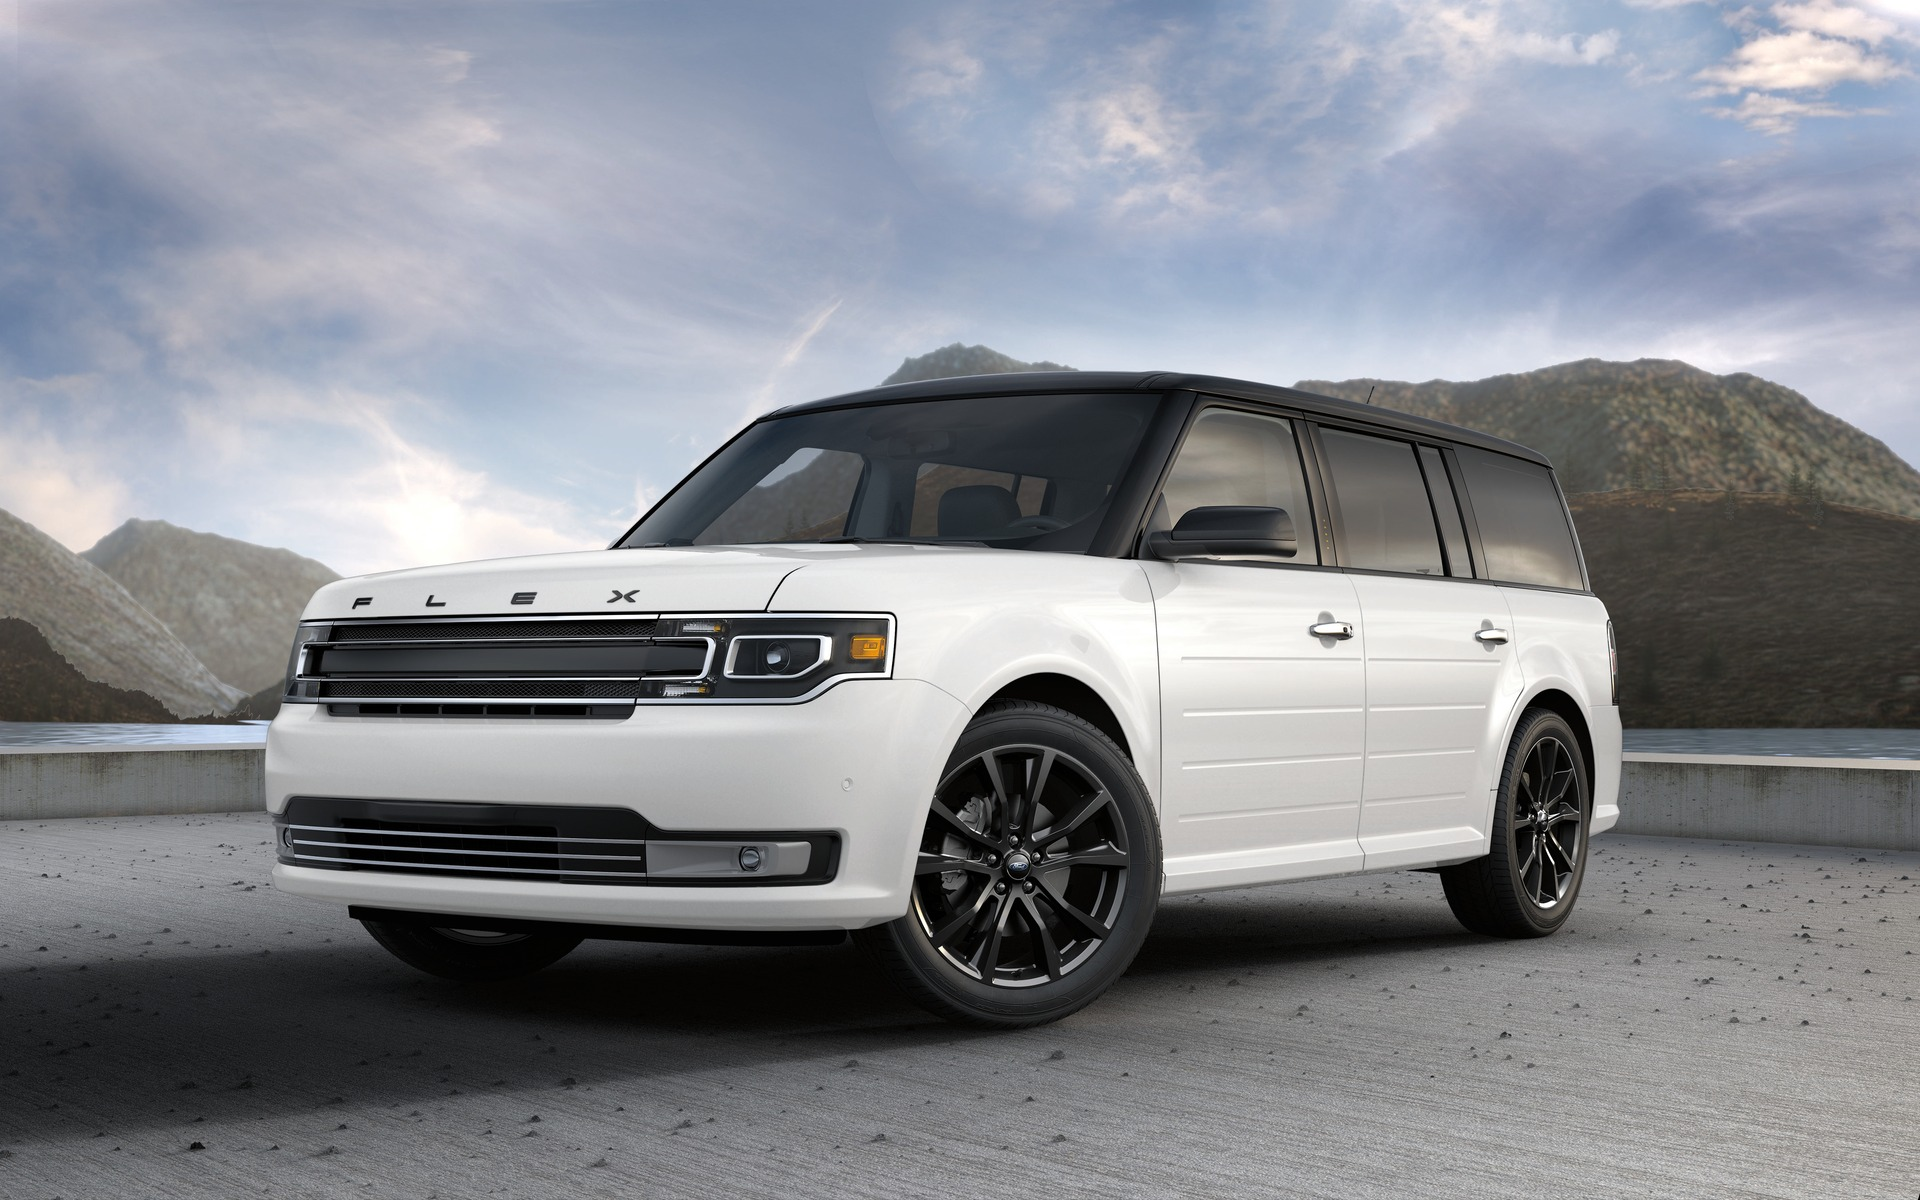 ford flex 2016 le cha non manquant guide auto. Black Bedroom Furniture Sets. Home Design Ideas